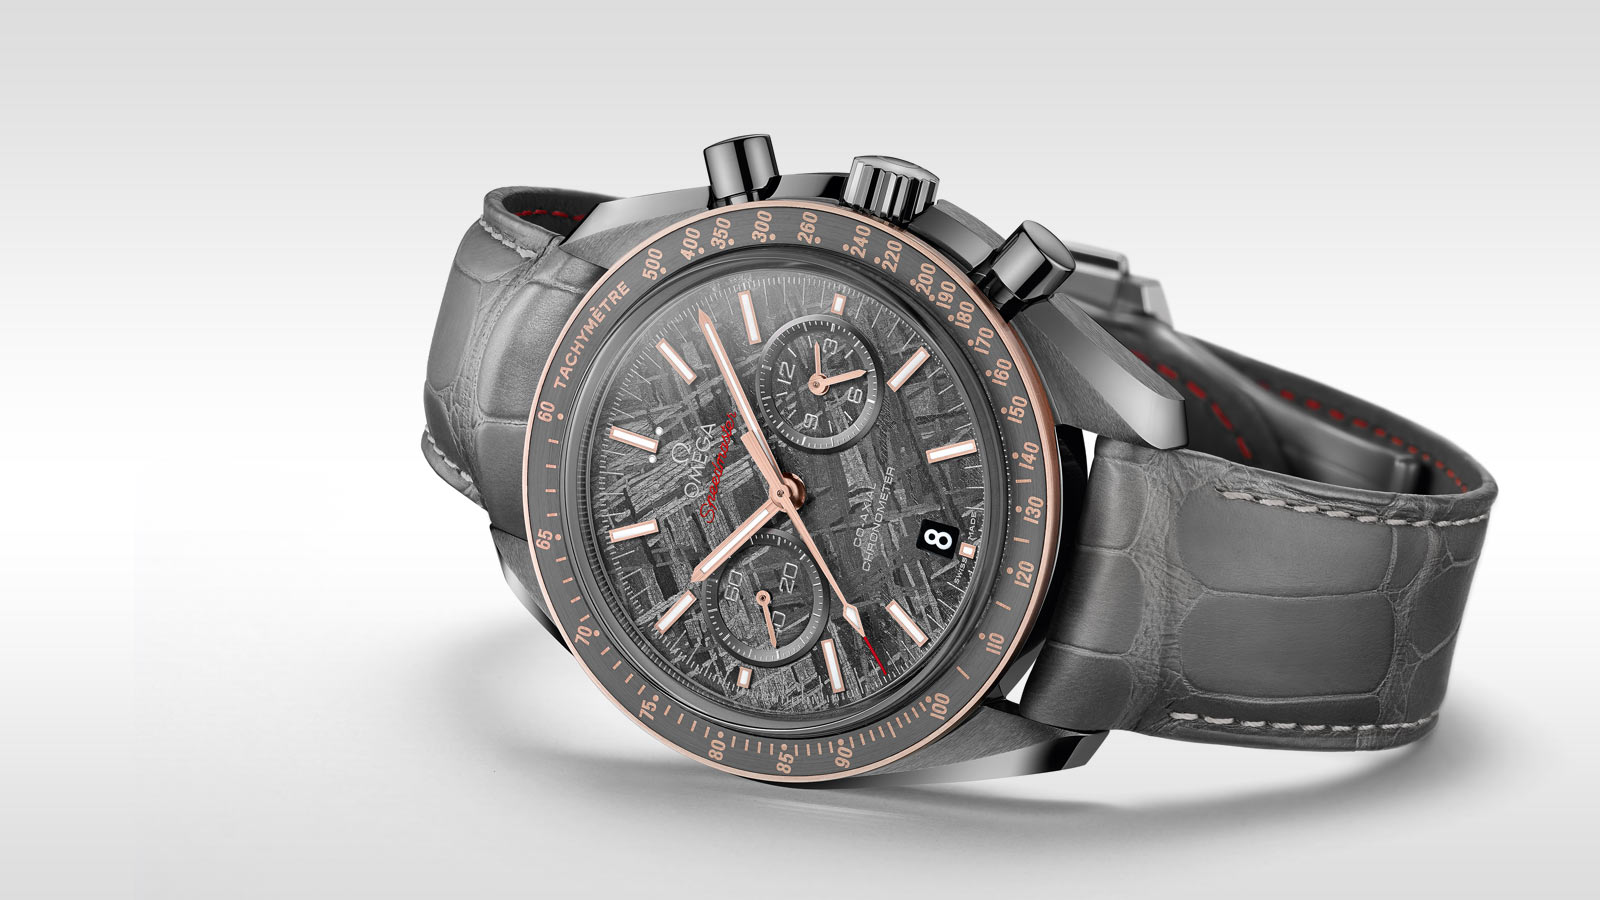 Speedmaster Moonwatch Moonwatch Omega Co‑Axial Chronograph 44,25 mm - 311.63.44.51.99.001 - Vista 2